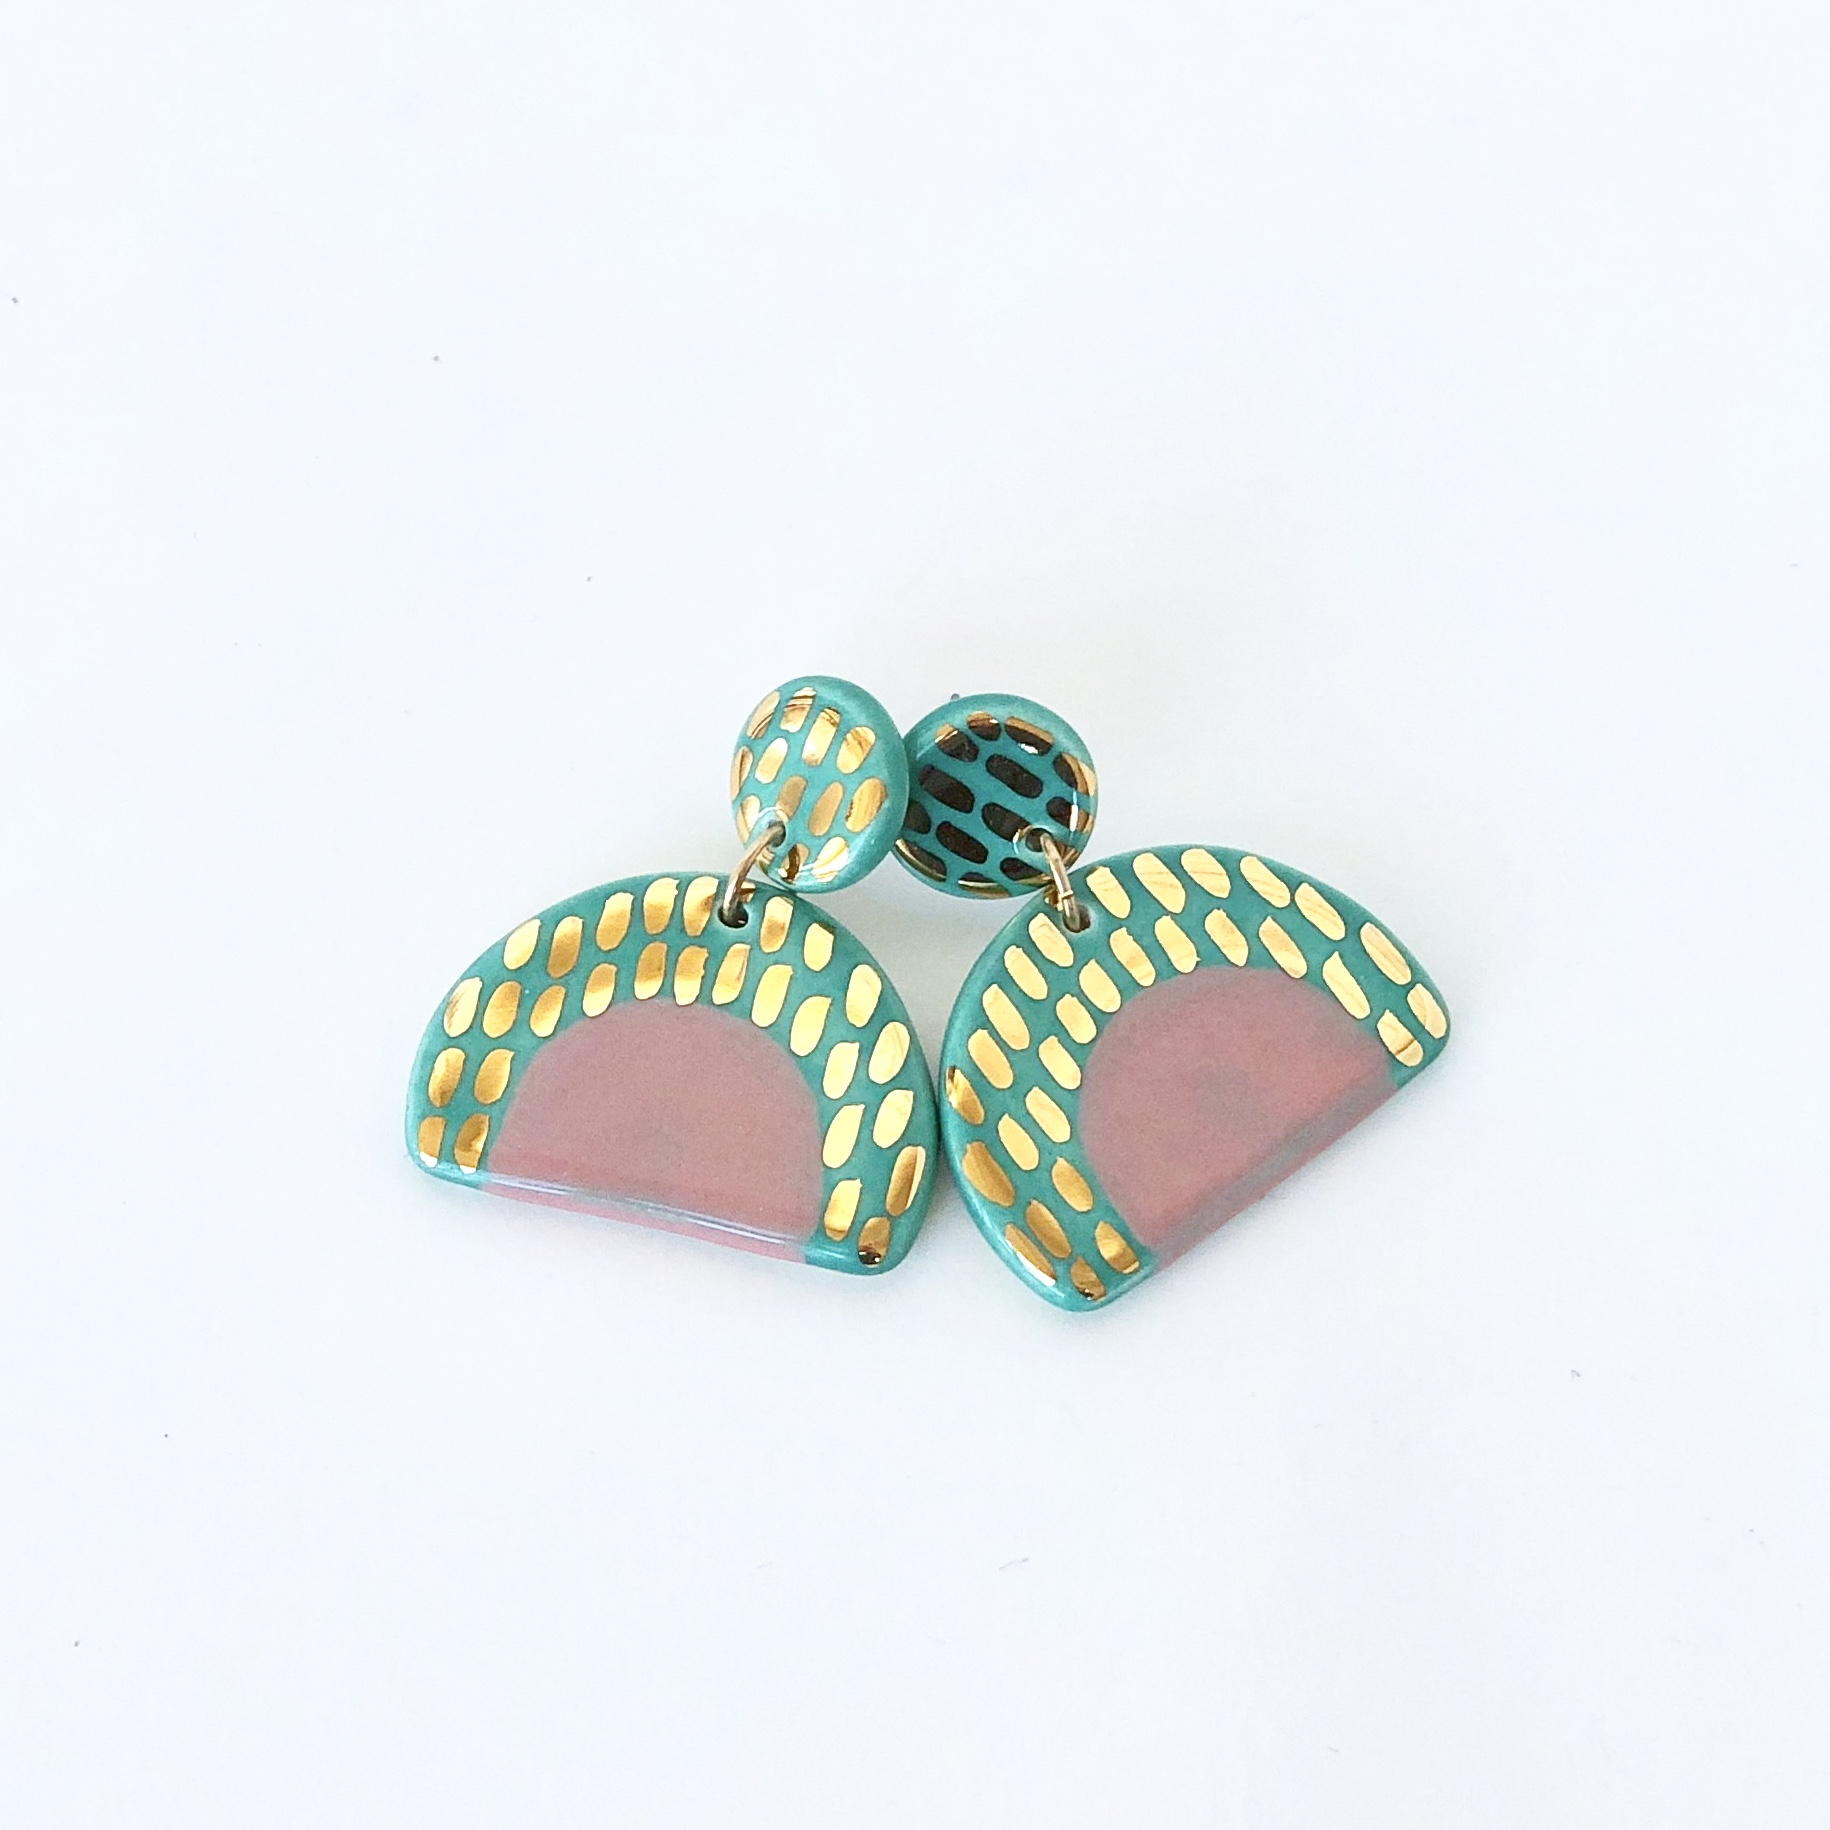 Green, pink, and gold statement earrings.